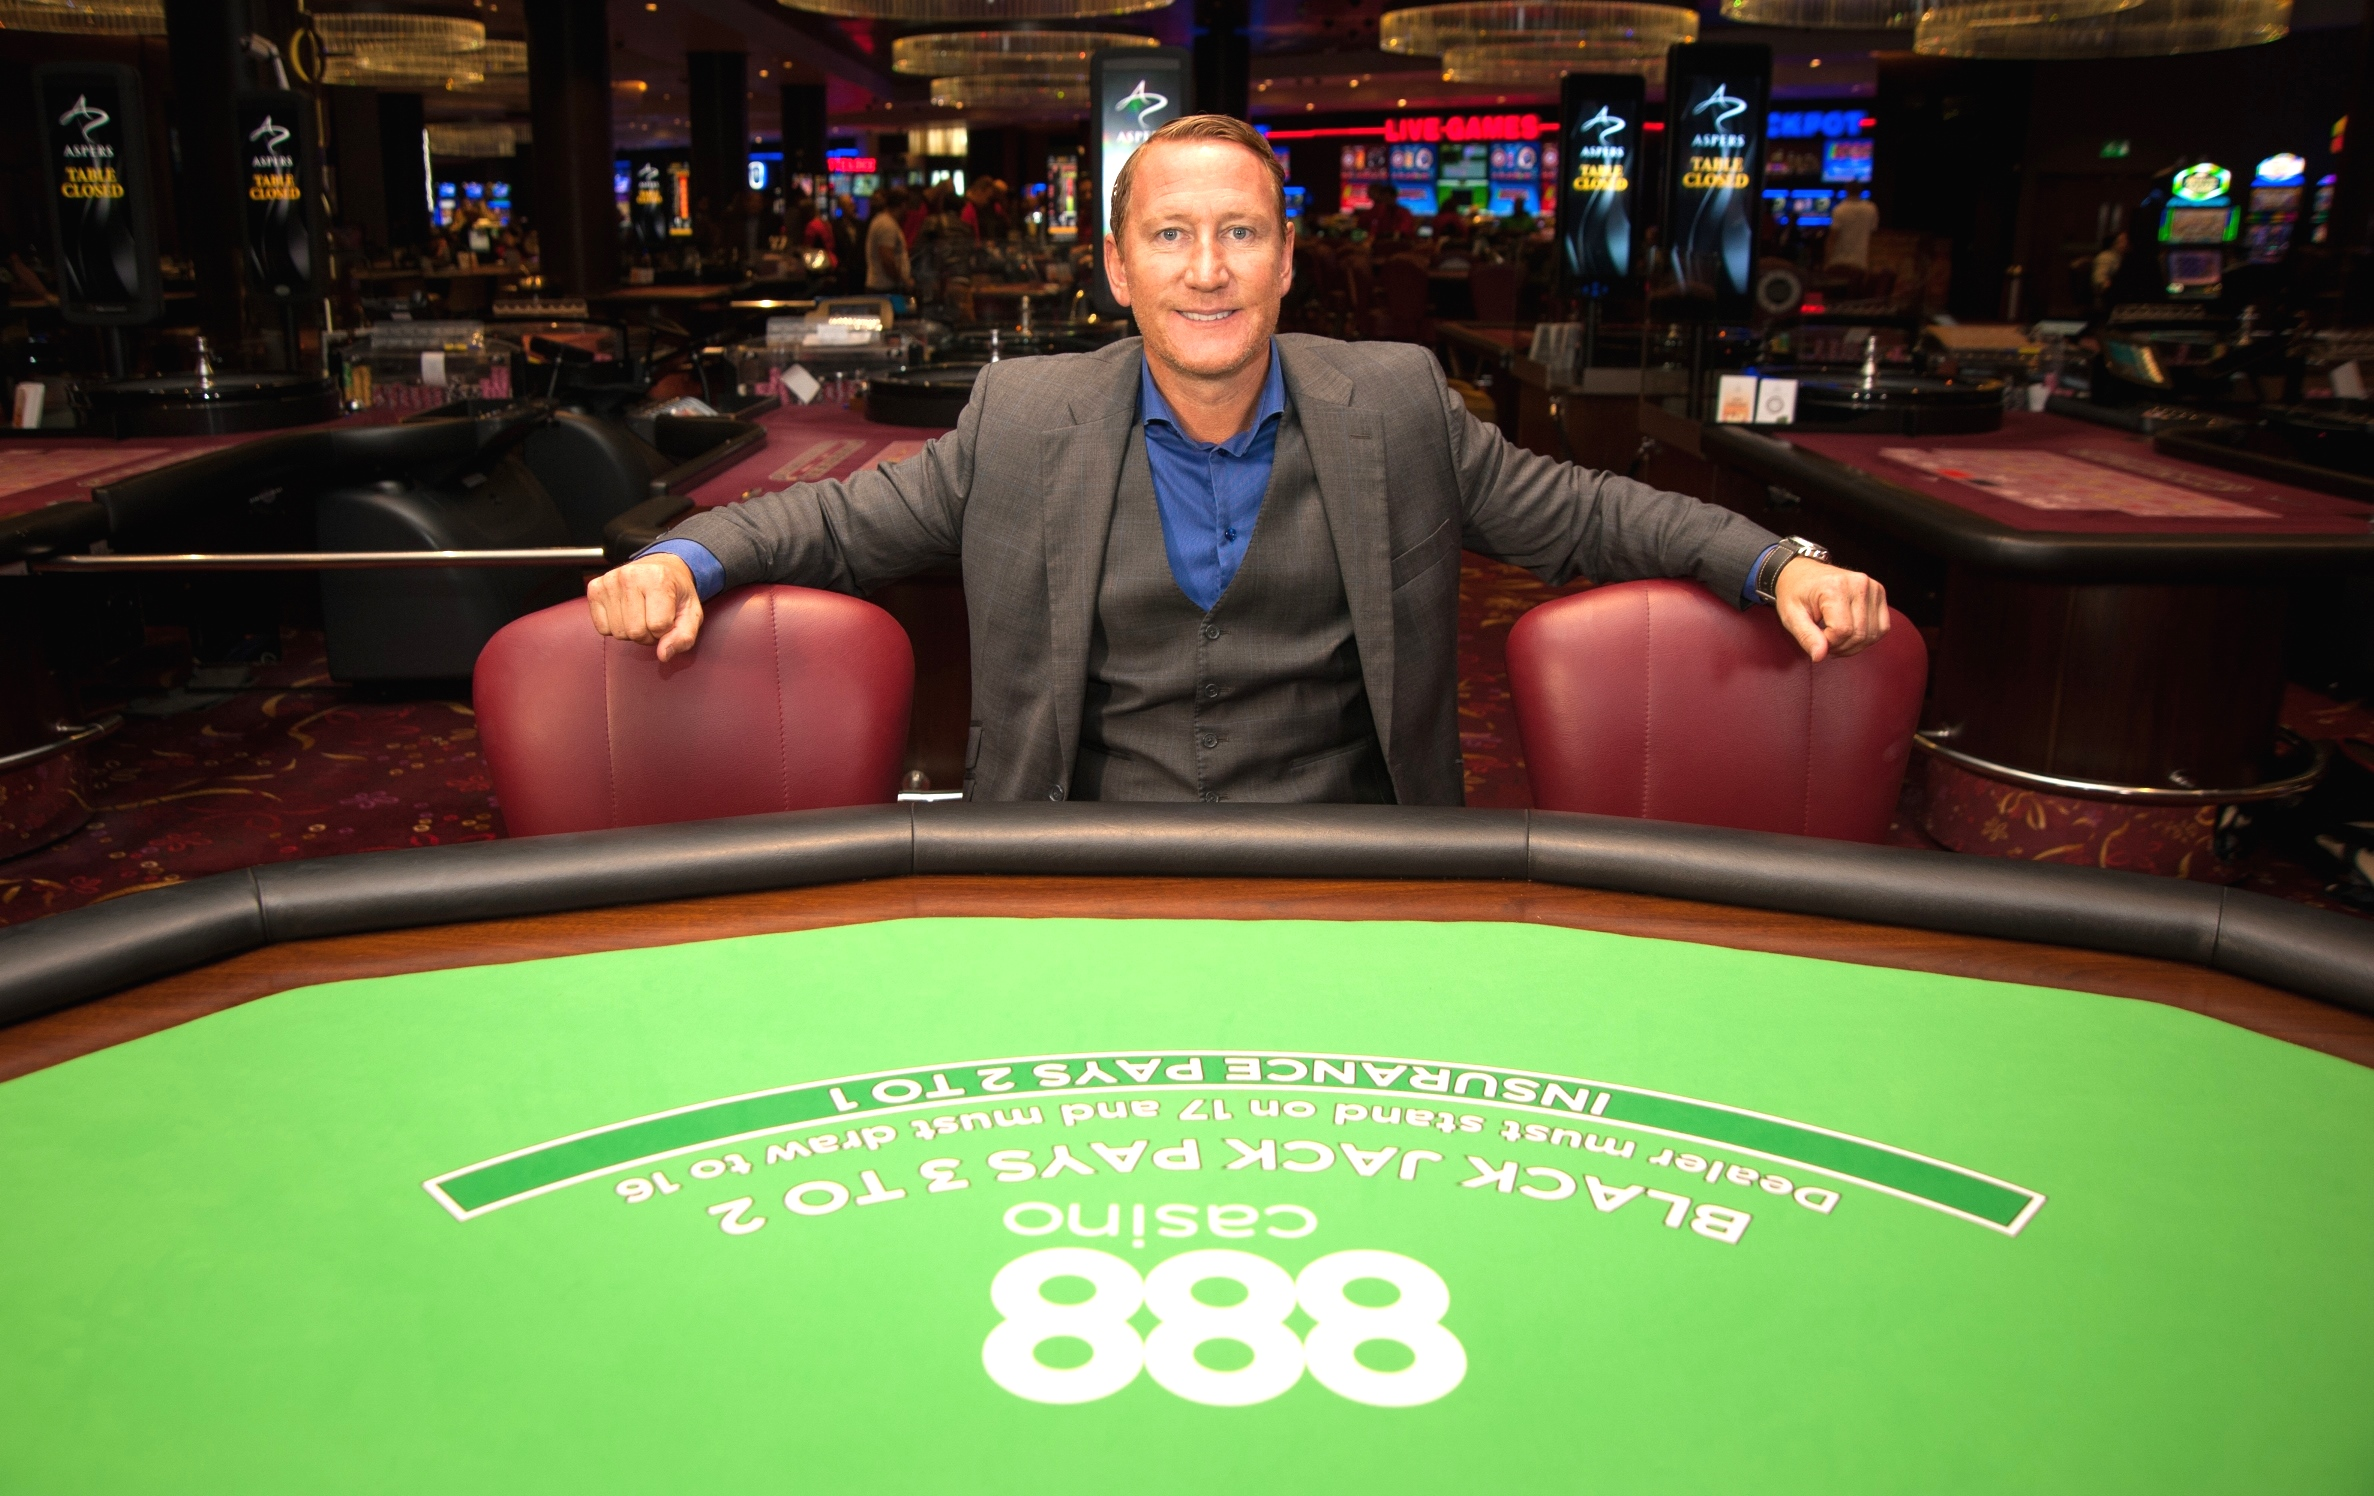 Arsenal legend Parlour plays a 'shocking' game of Blackjack